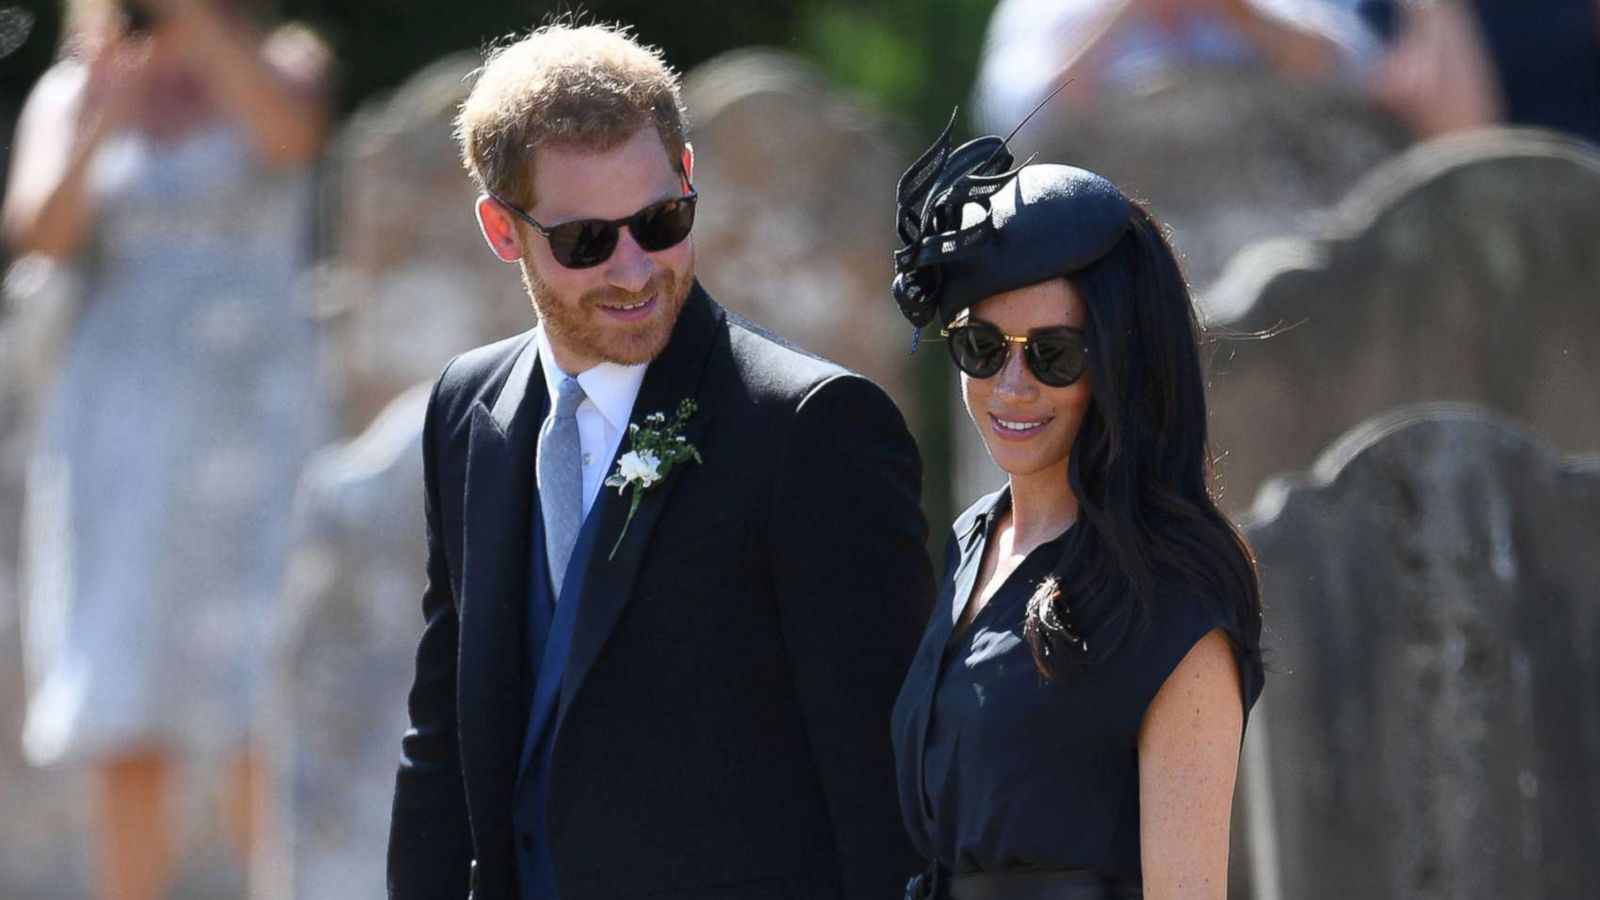 Prince Harry Ss Meghan Attend His Childhood Friend S Wedding Abc News